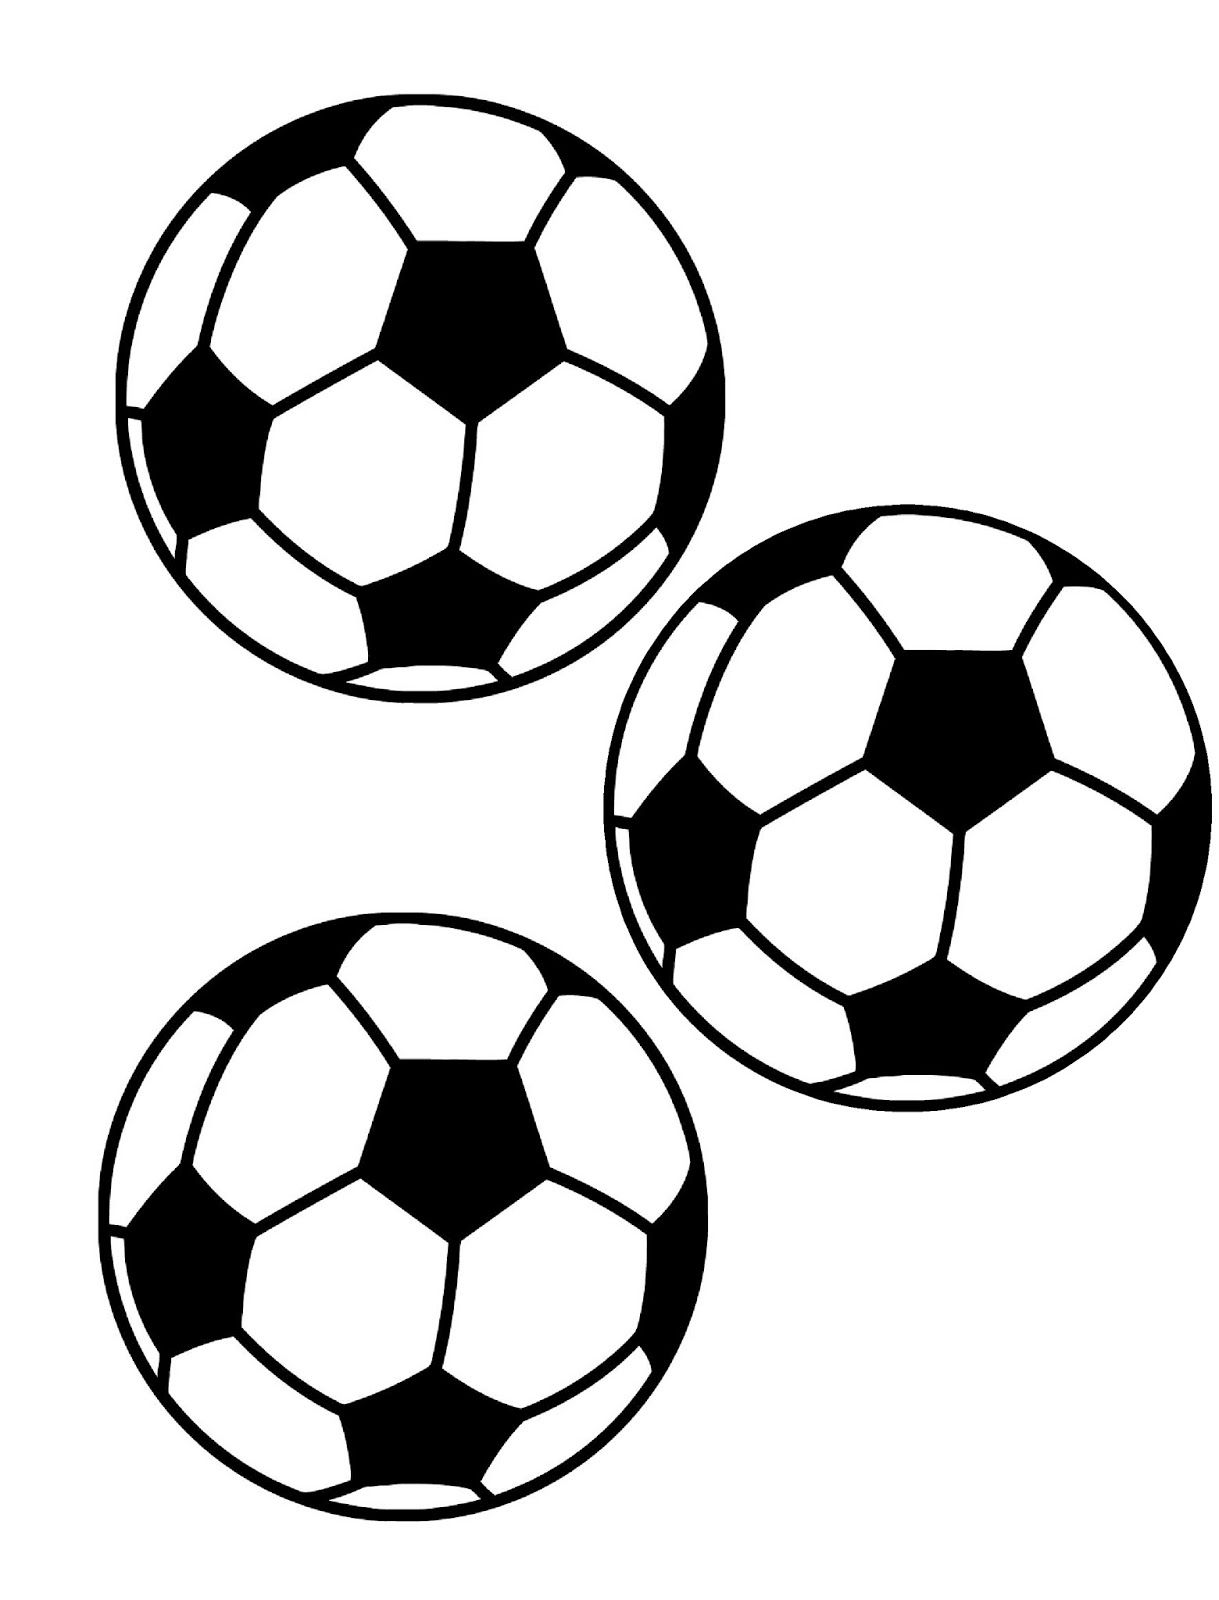 colouring picture of a ball ball coloring pages for kids to print for free a of picture ball colouring